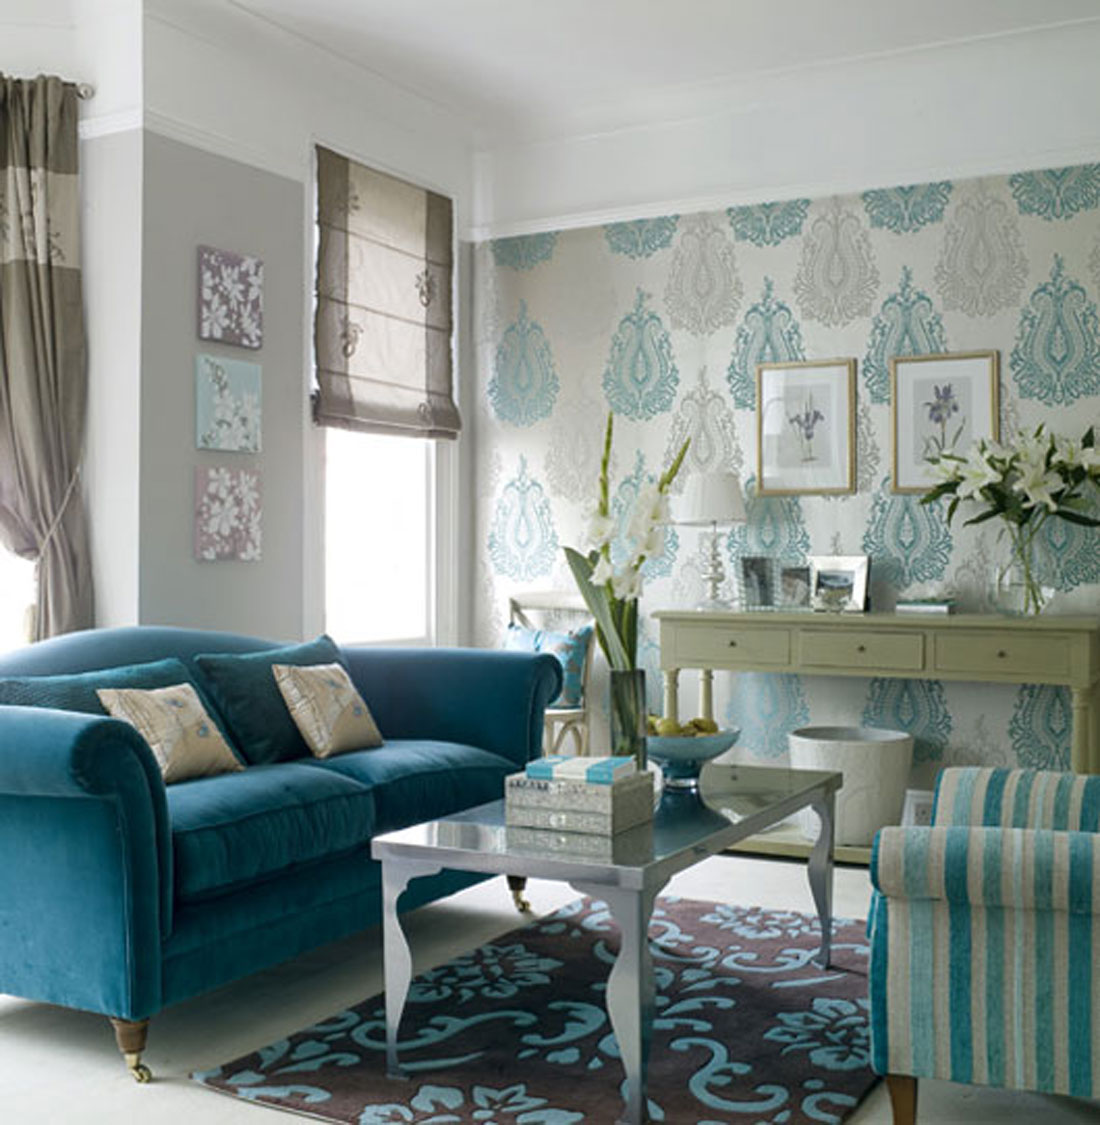 Living Rooms Designs: The Texture Of Teal And Turquoise